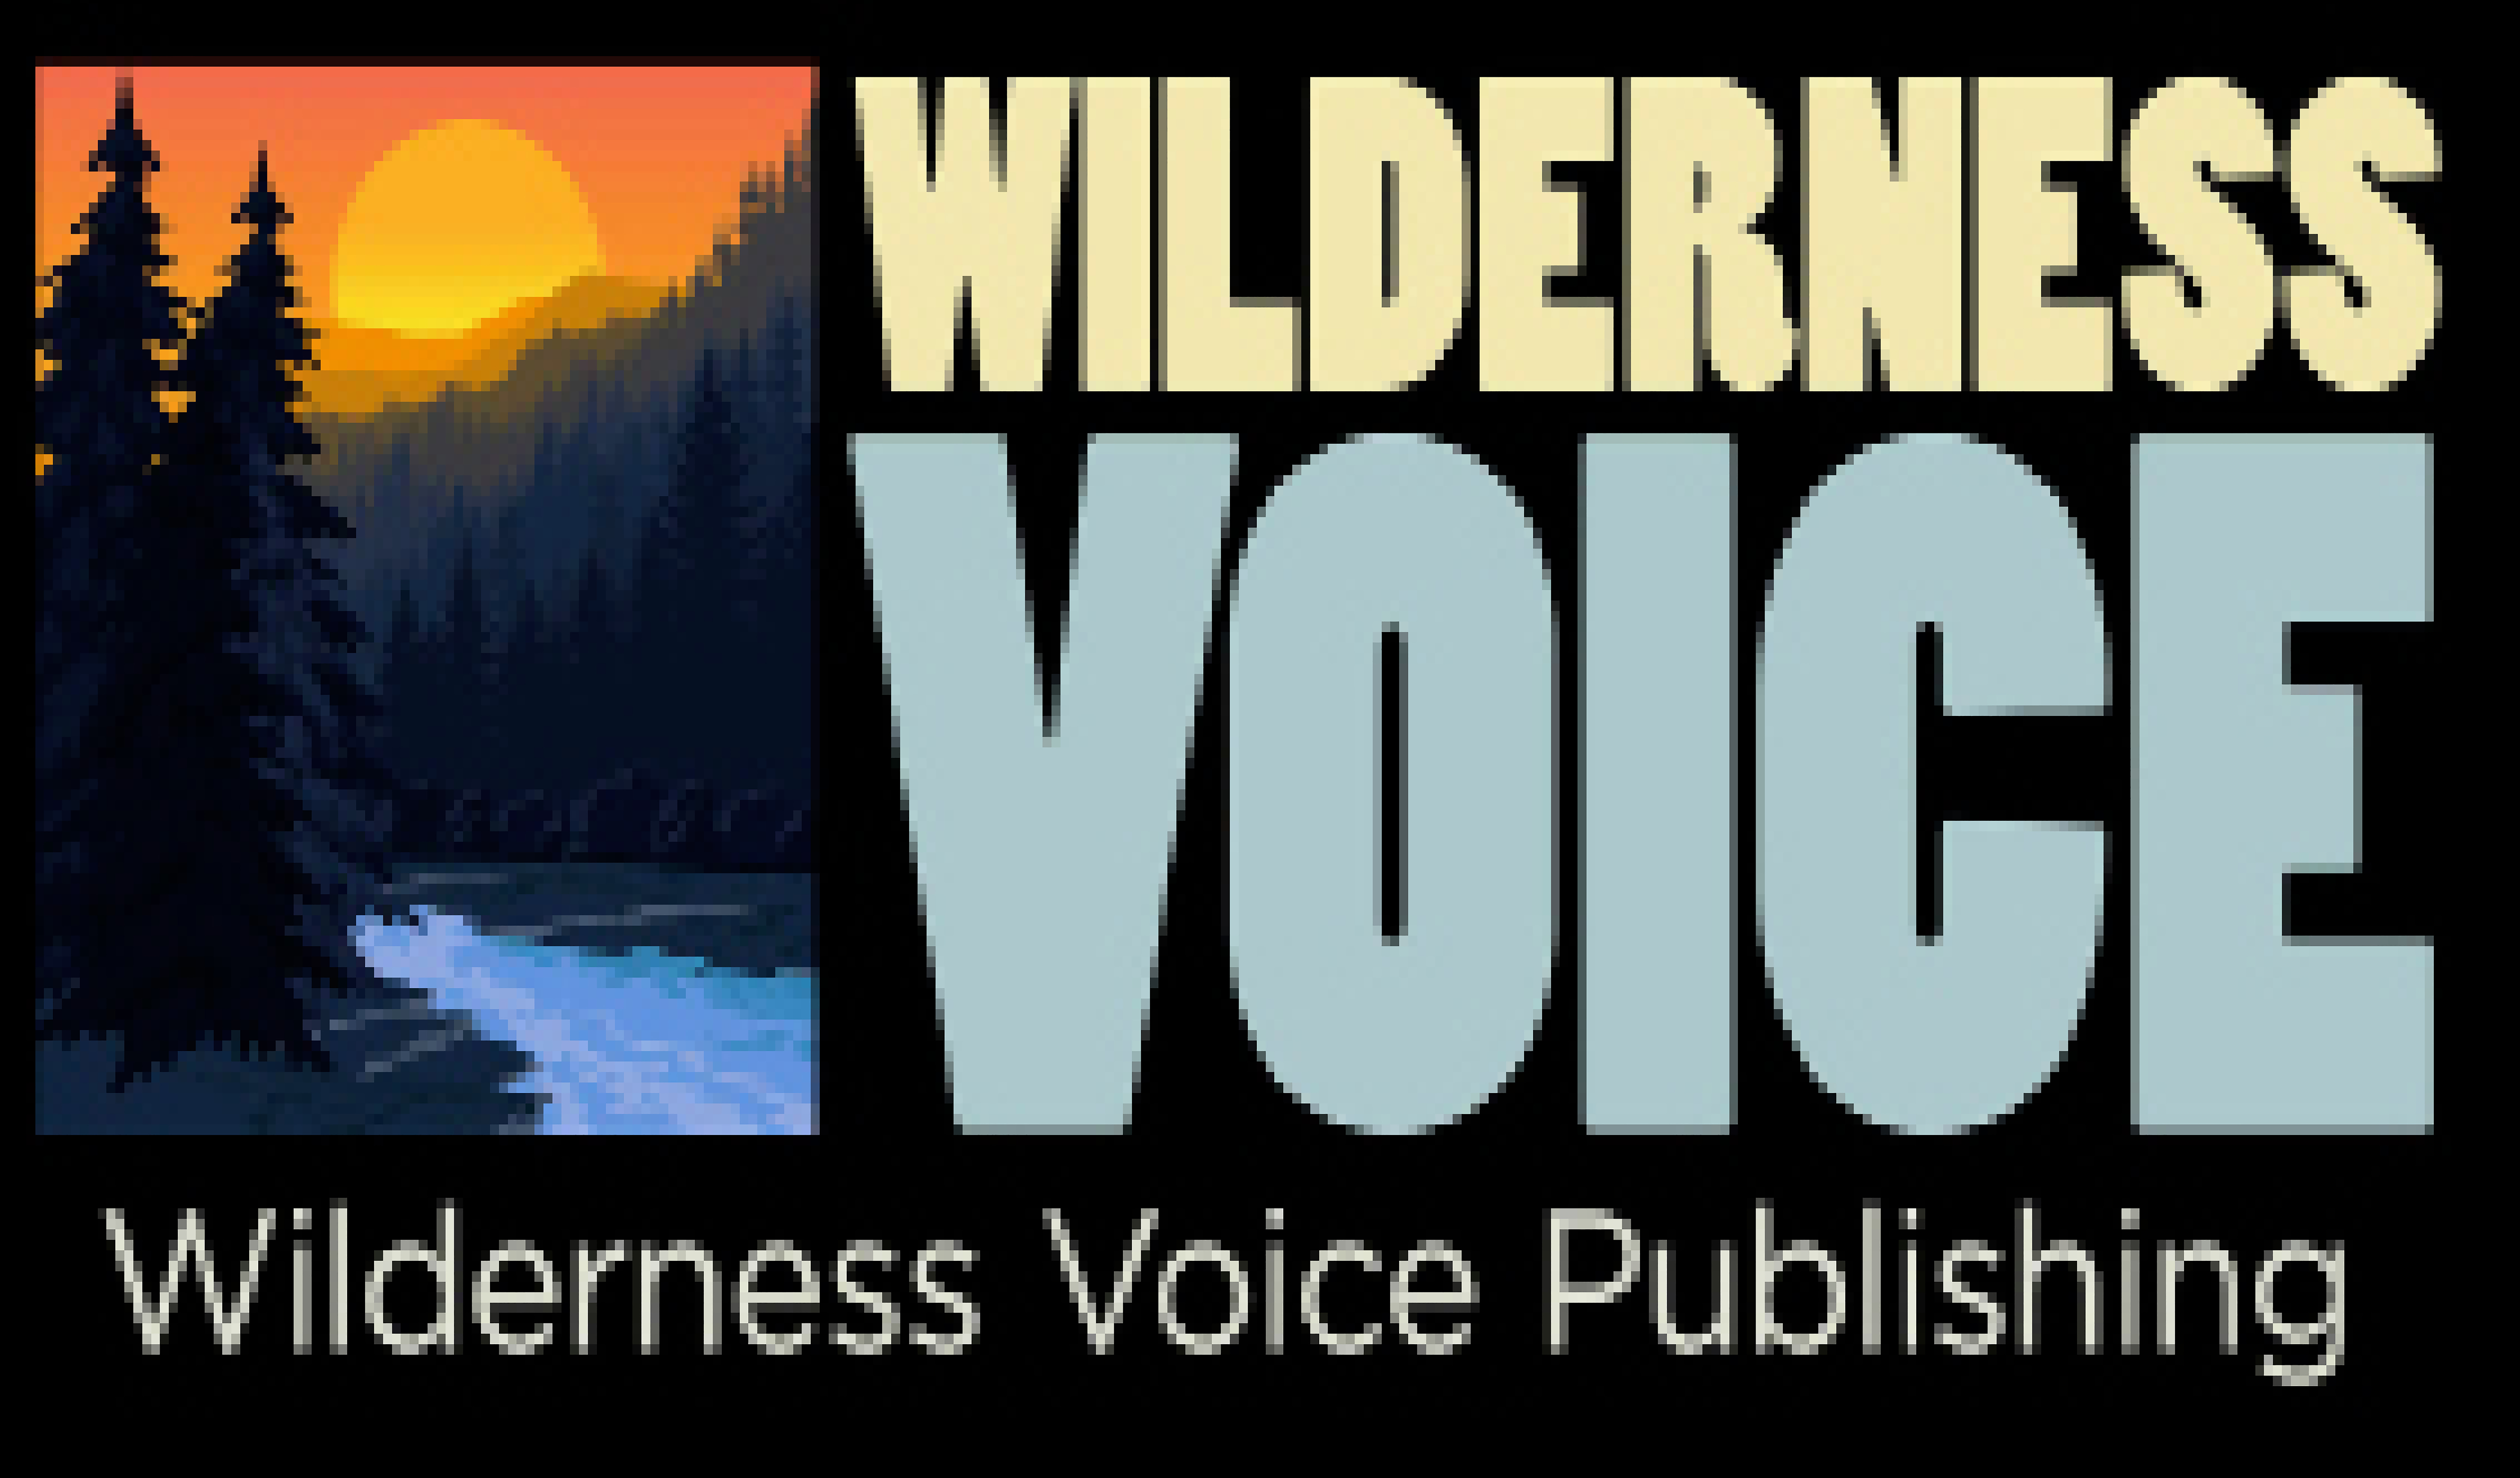 Wilderness Voice Publishing